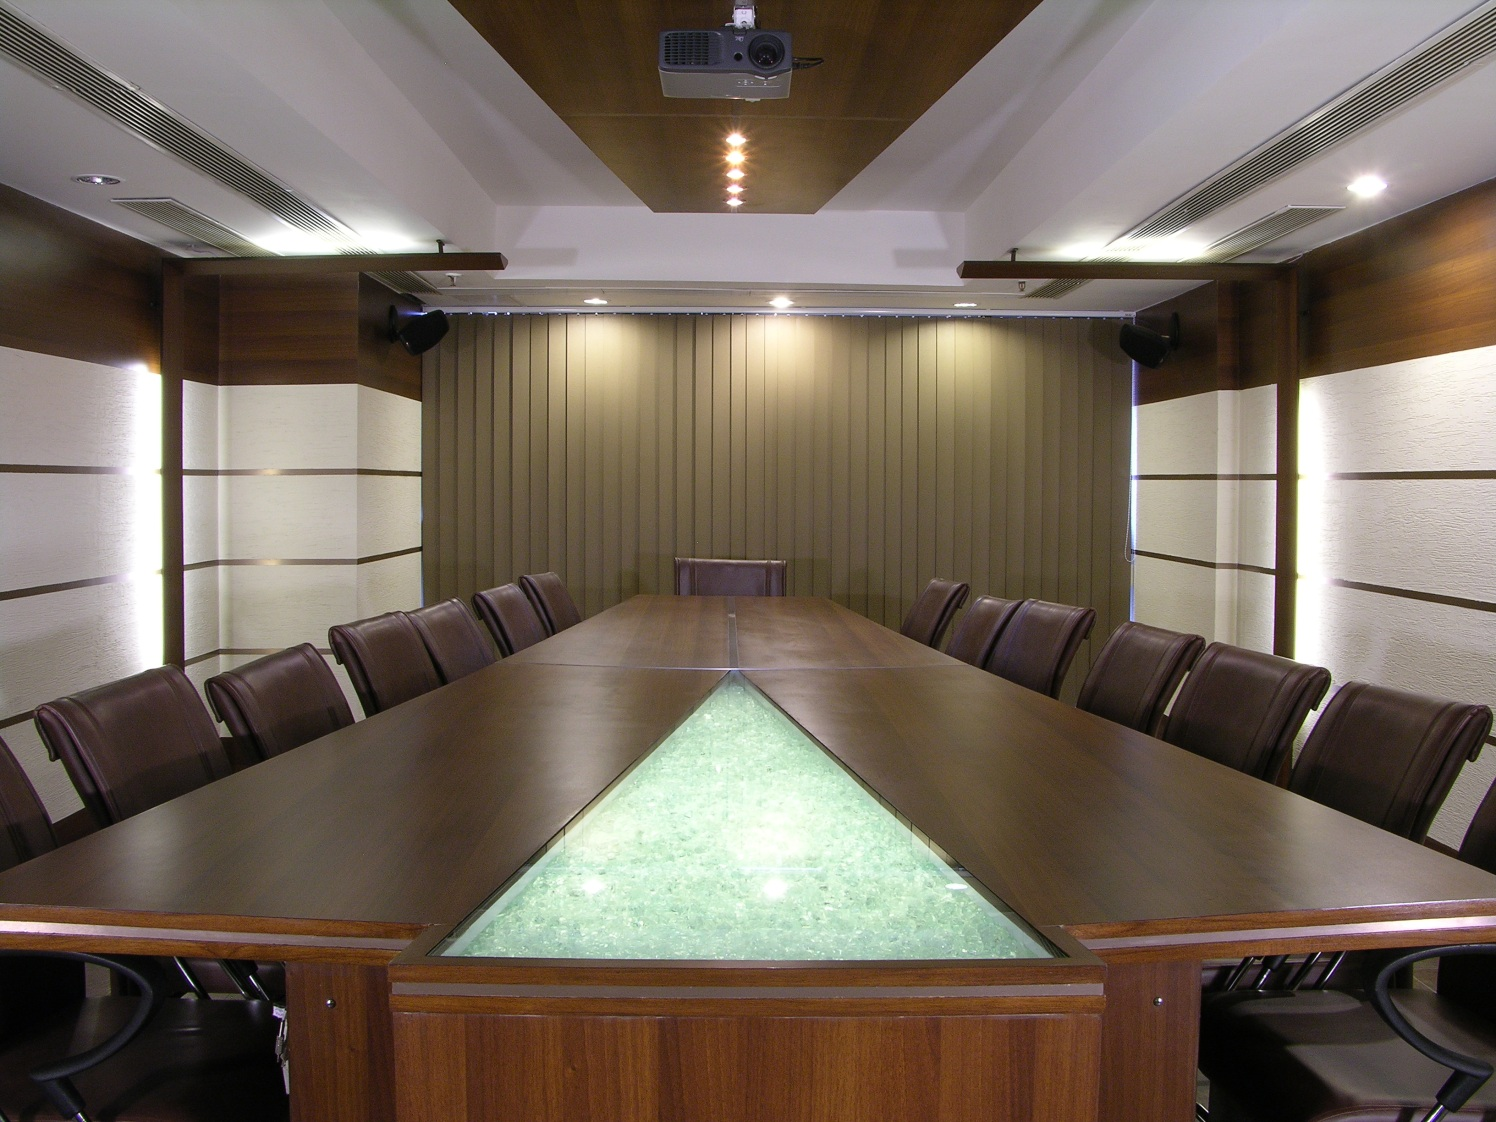 Formal Meeting Room by Vijay Kapur Designs Modern | Interior Design Photos & Ideas